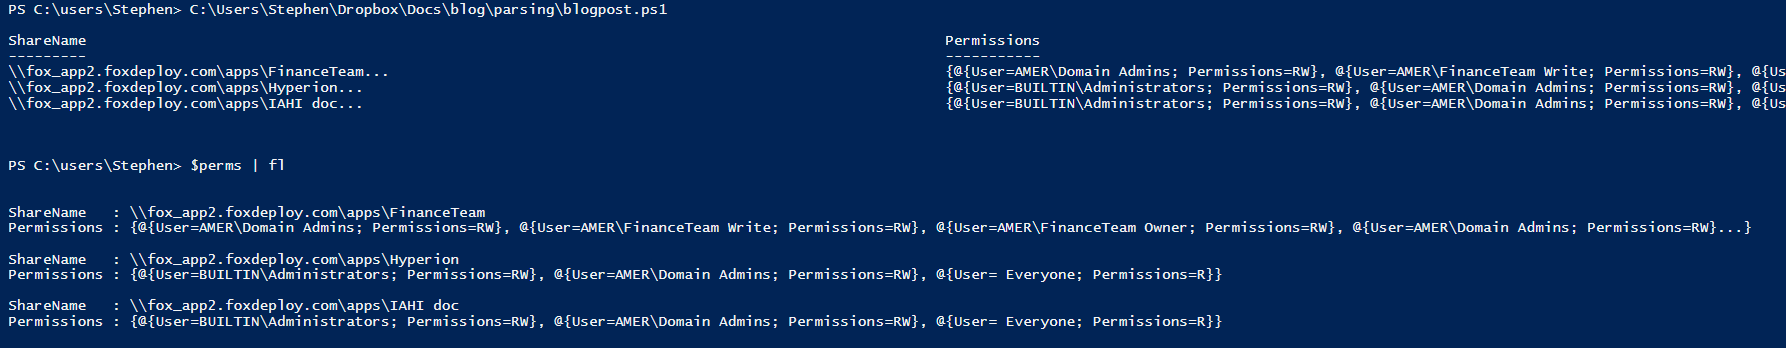 Walkthrough – Parsing log or console output with PowerShell